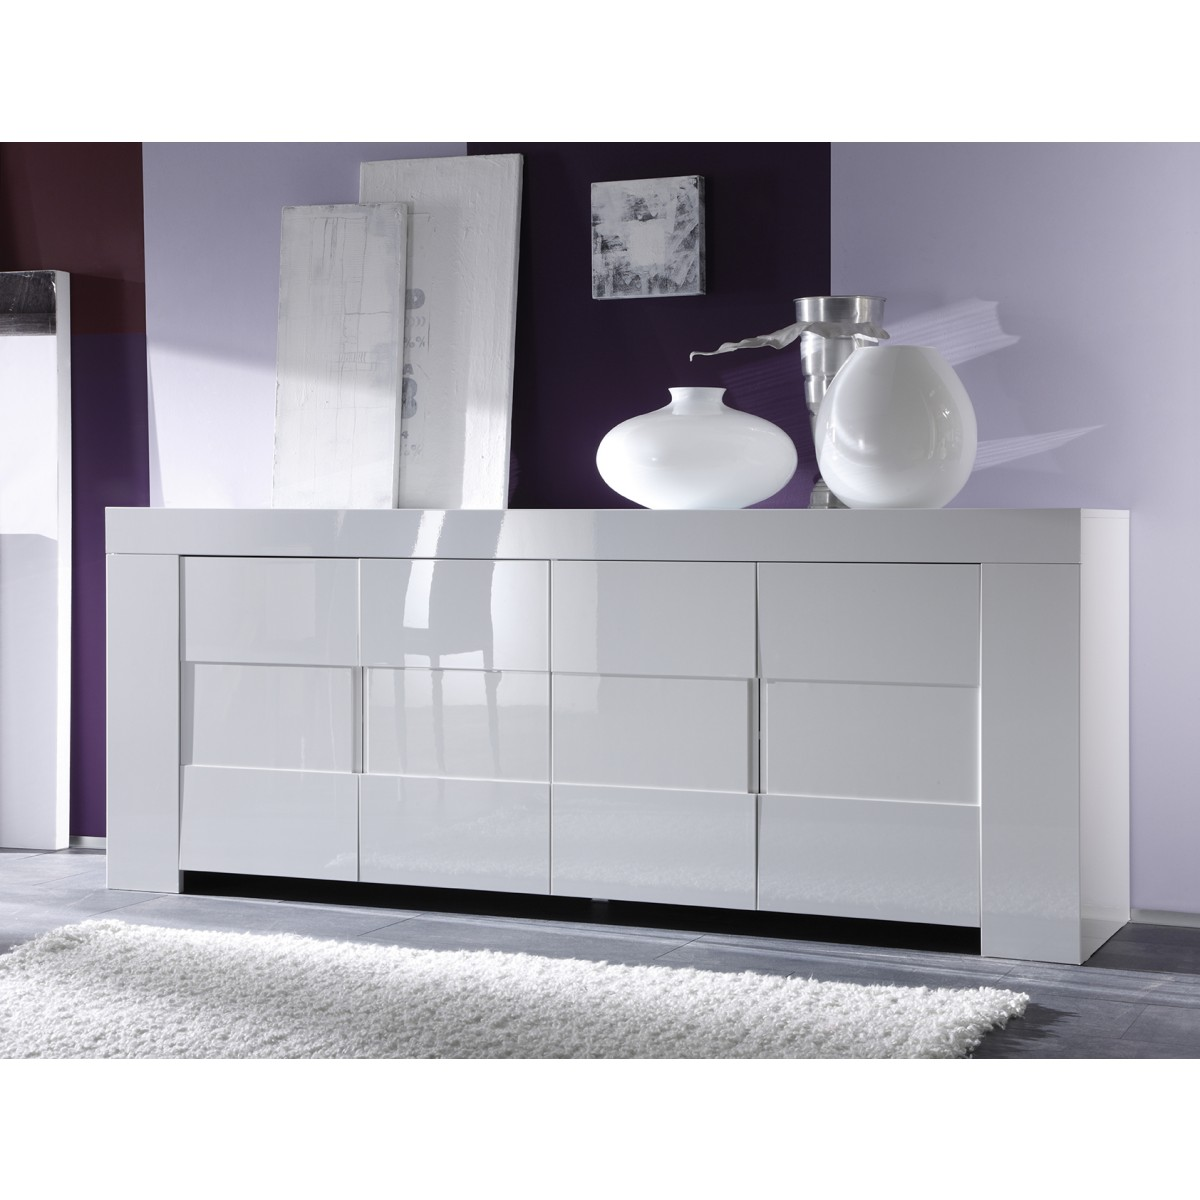 buffet blanc laqu ikea beautiful best banc tv marviken. Black Bedroom Furniture Sets. Home Design Ideas